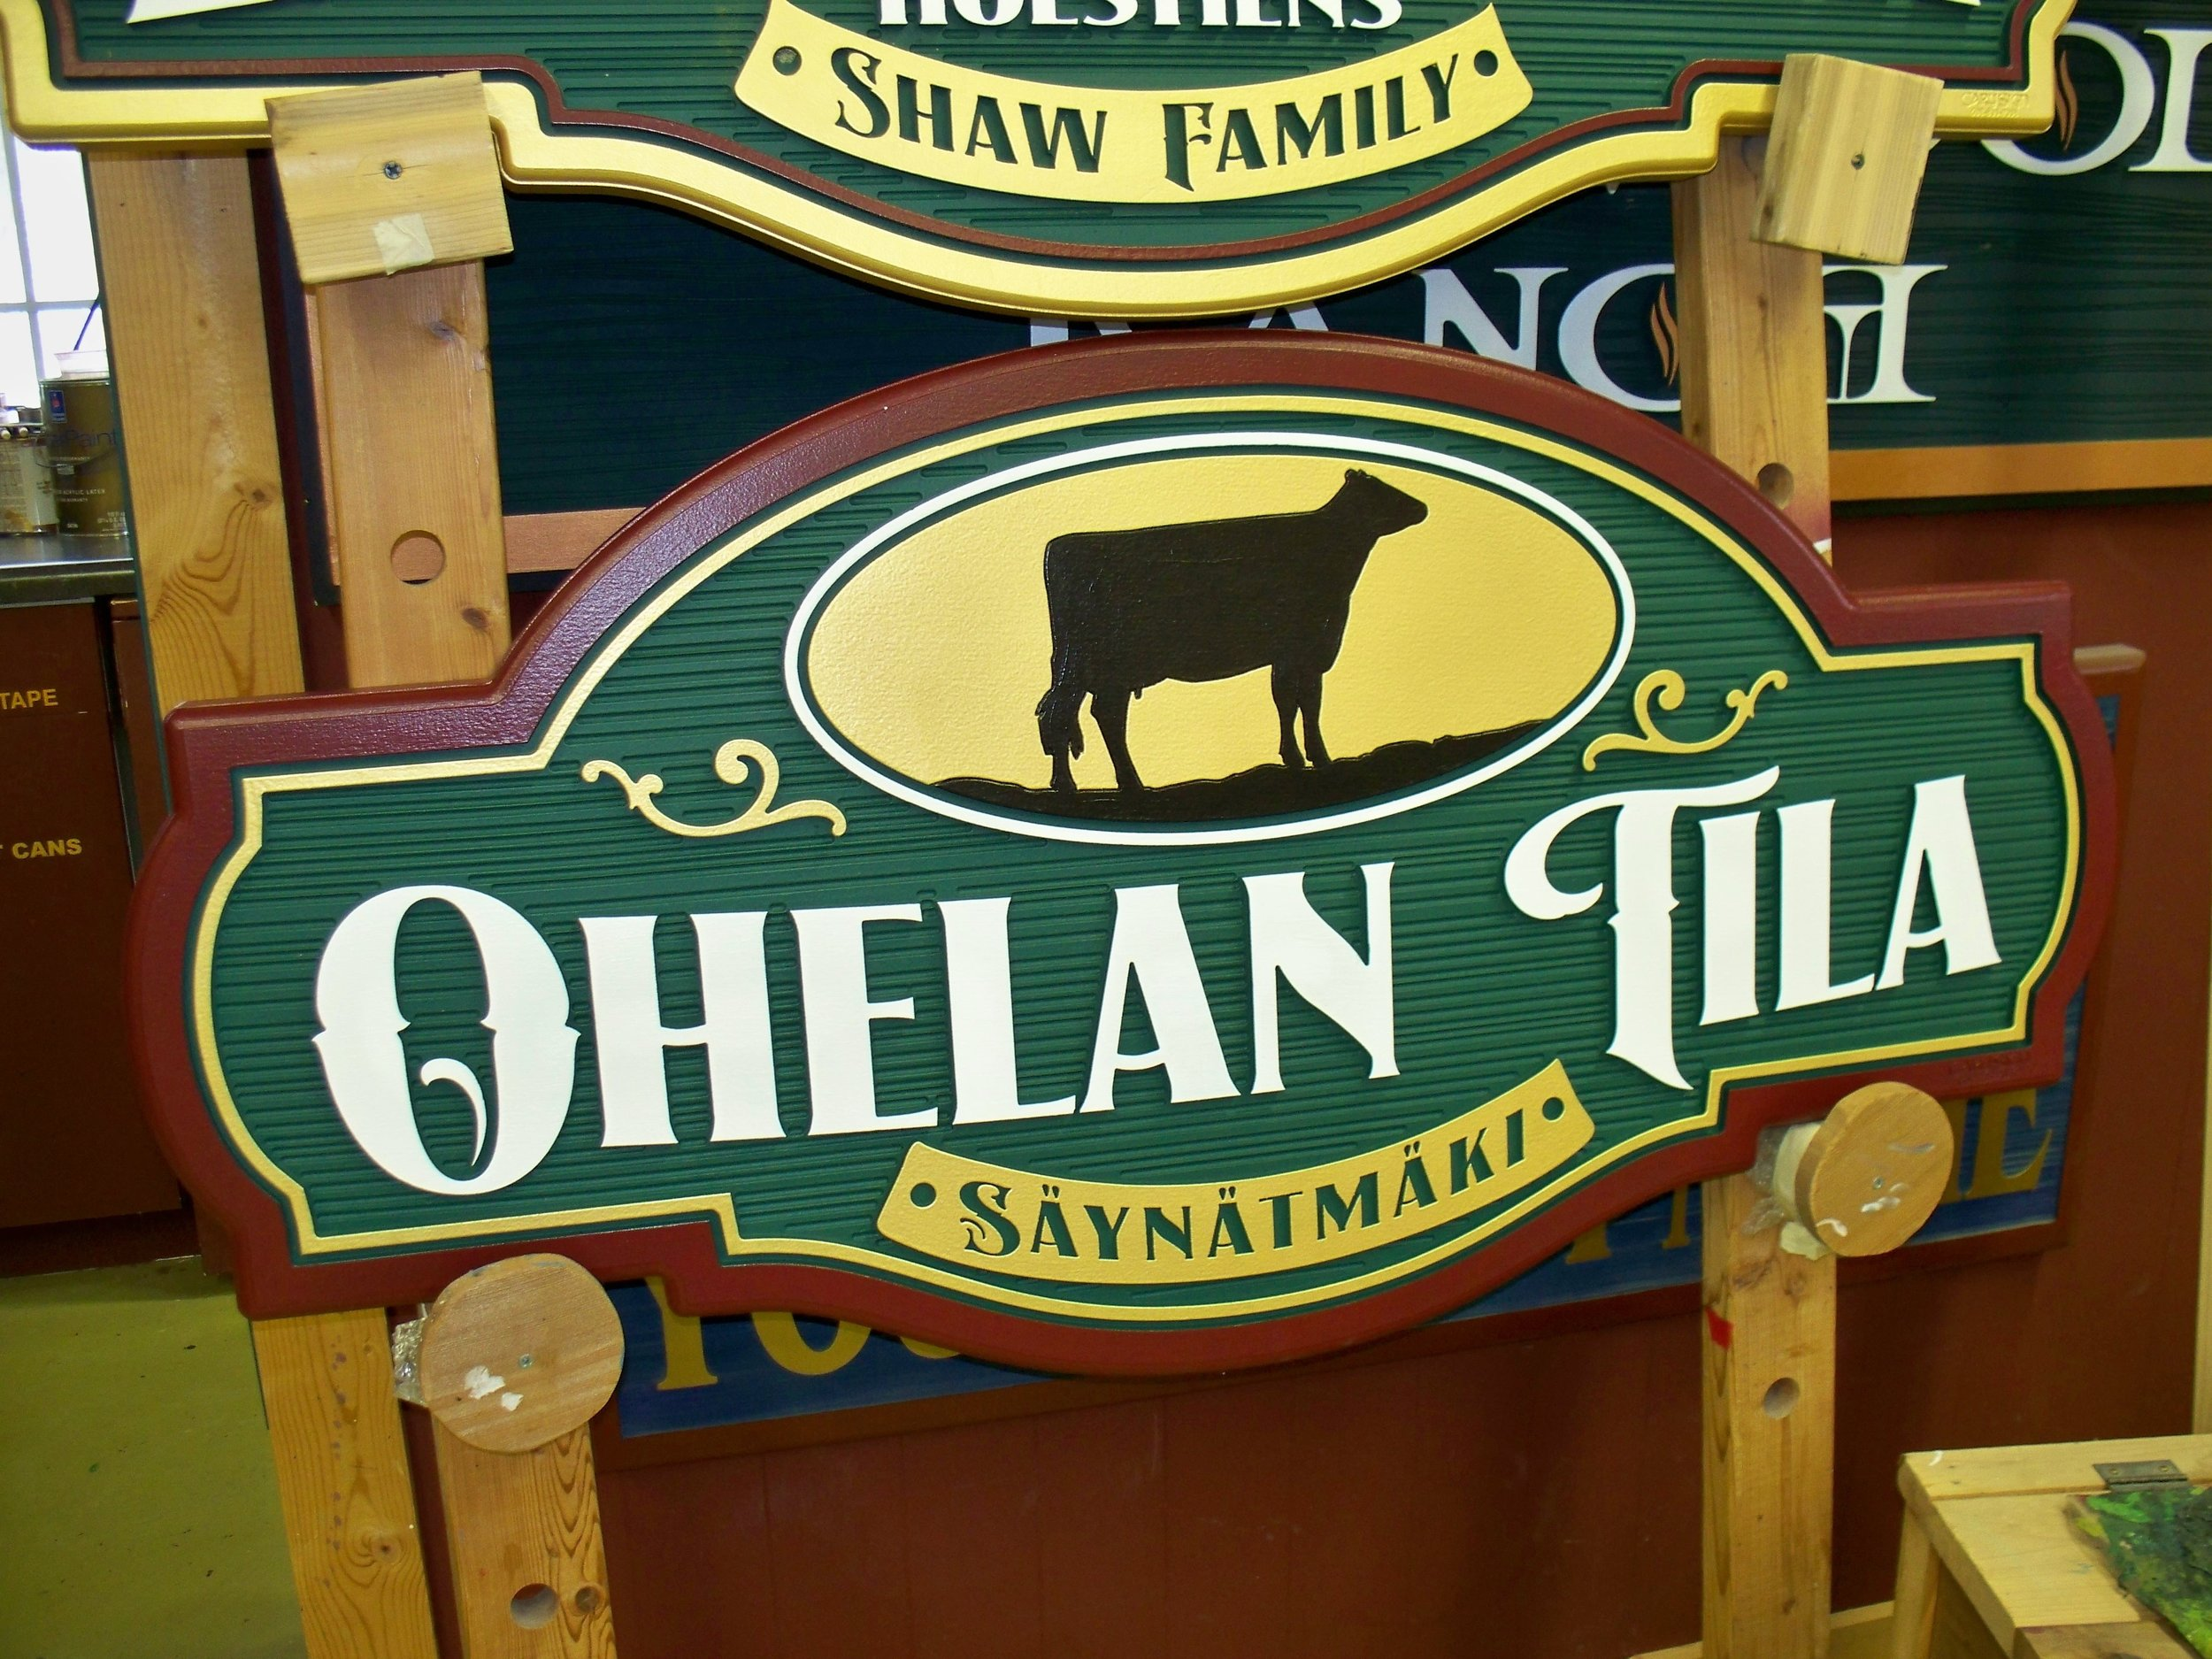 2' x 4' Single-Sided. $740 with Black Silhouette Holstein